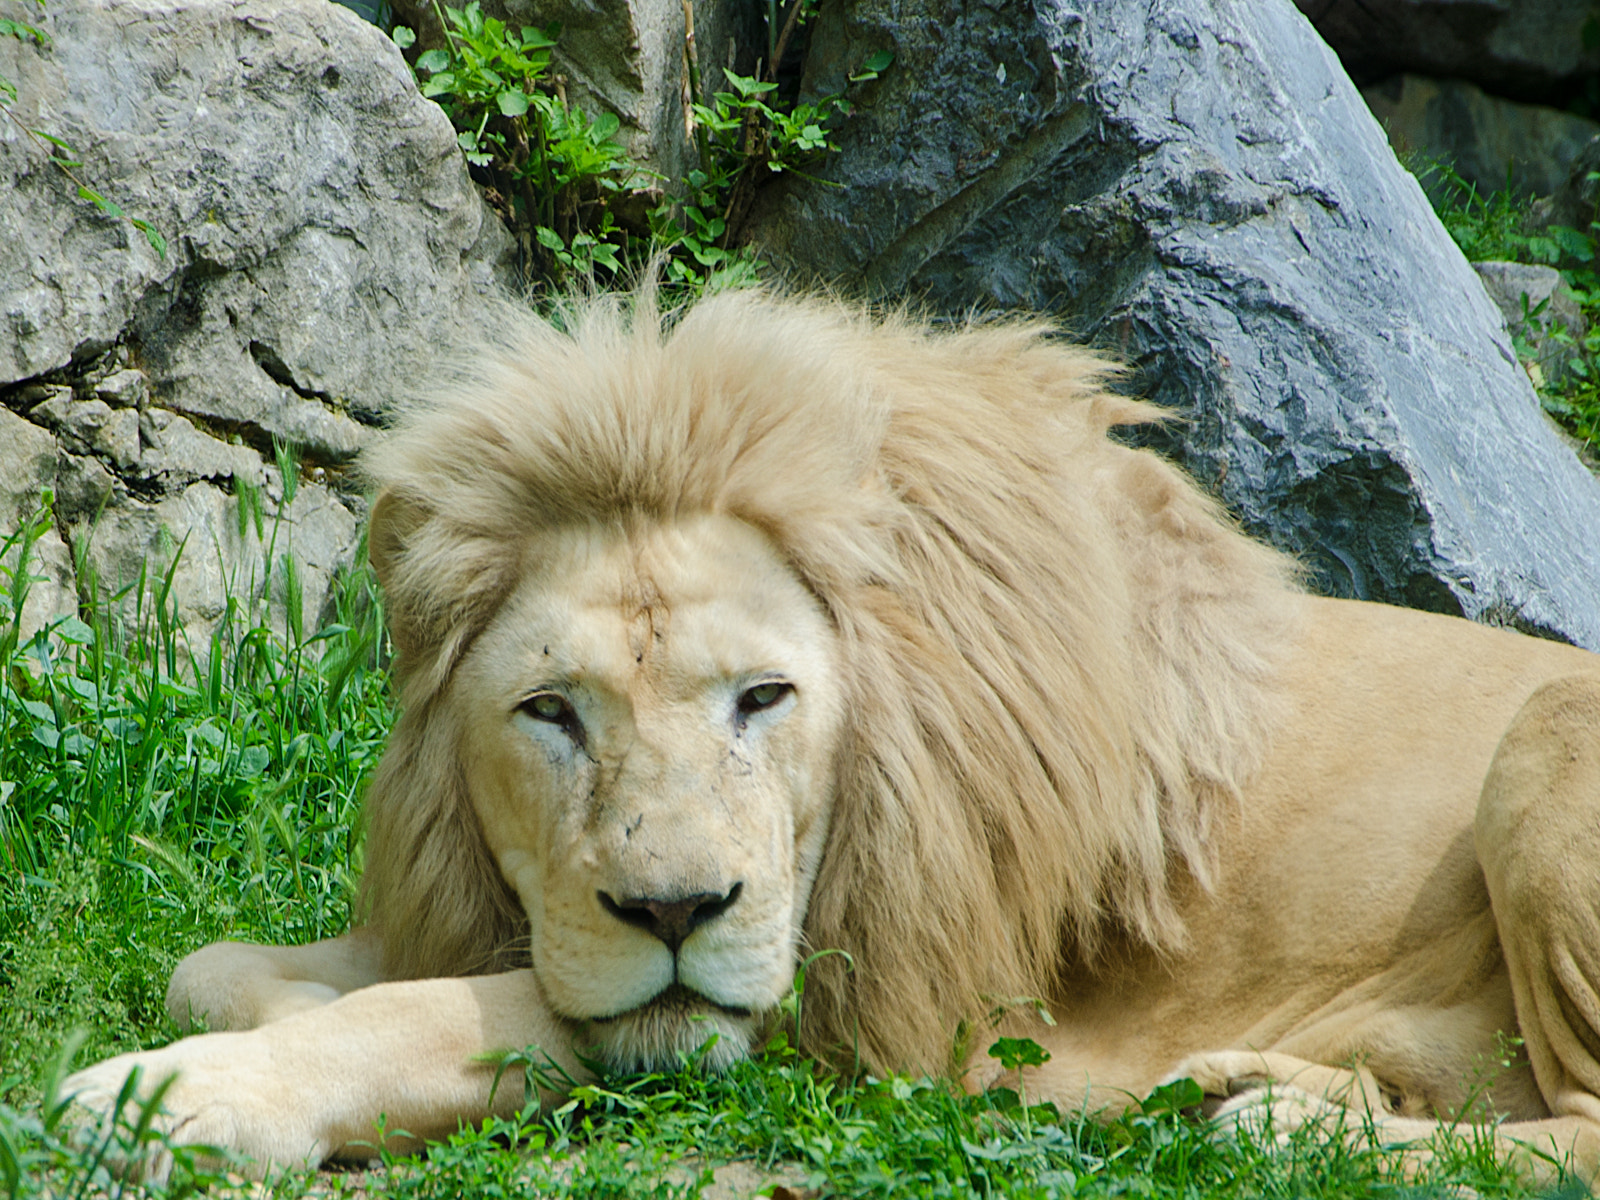 Photograph Lion by Nick L. on 500px